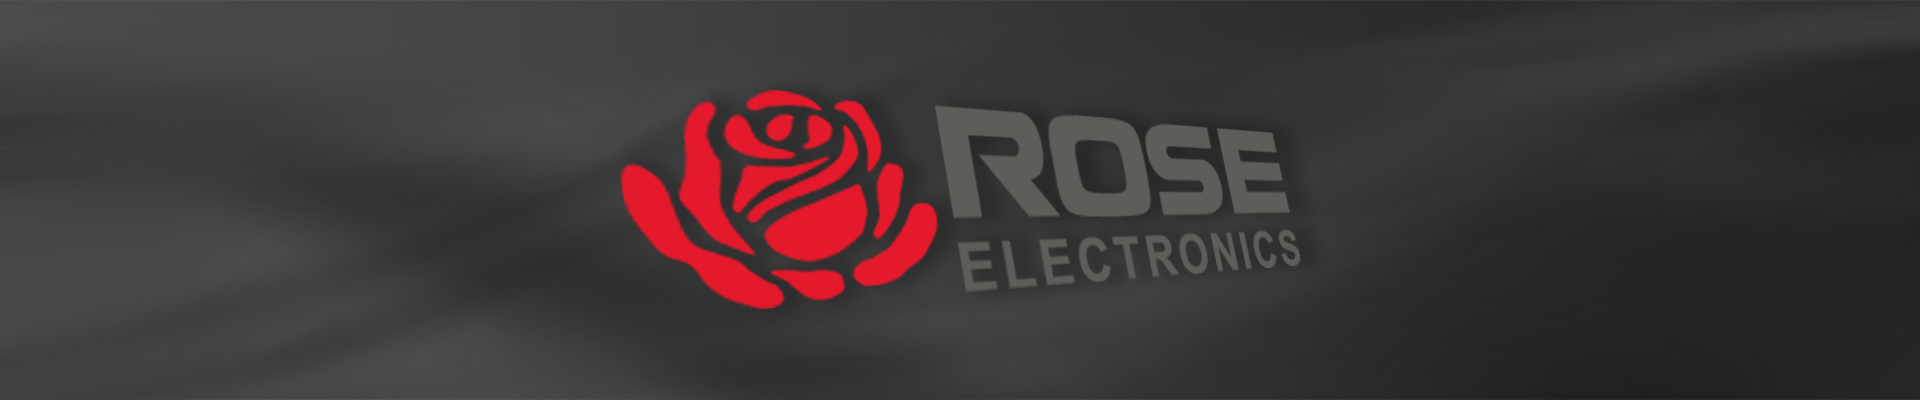 Rose Electronics Banner